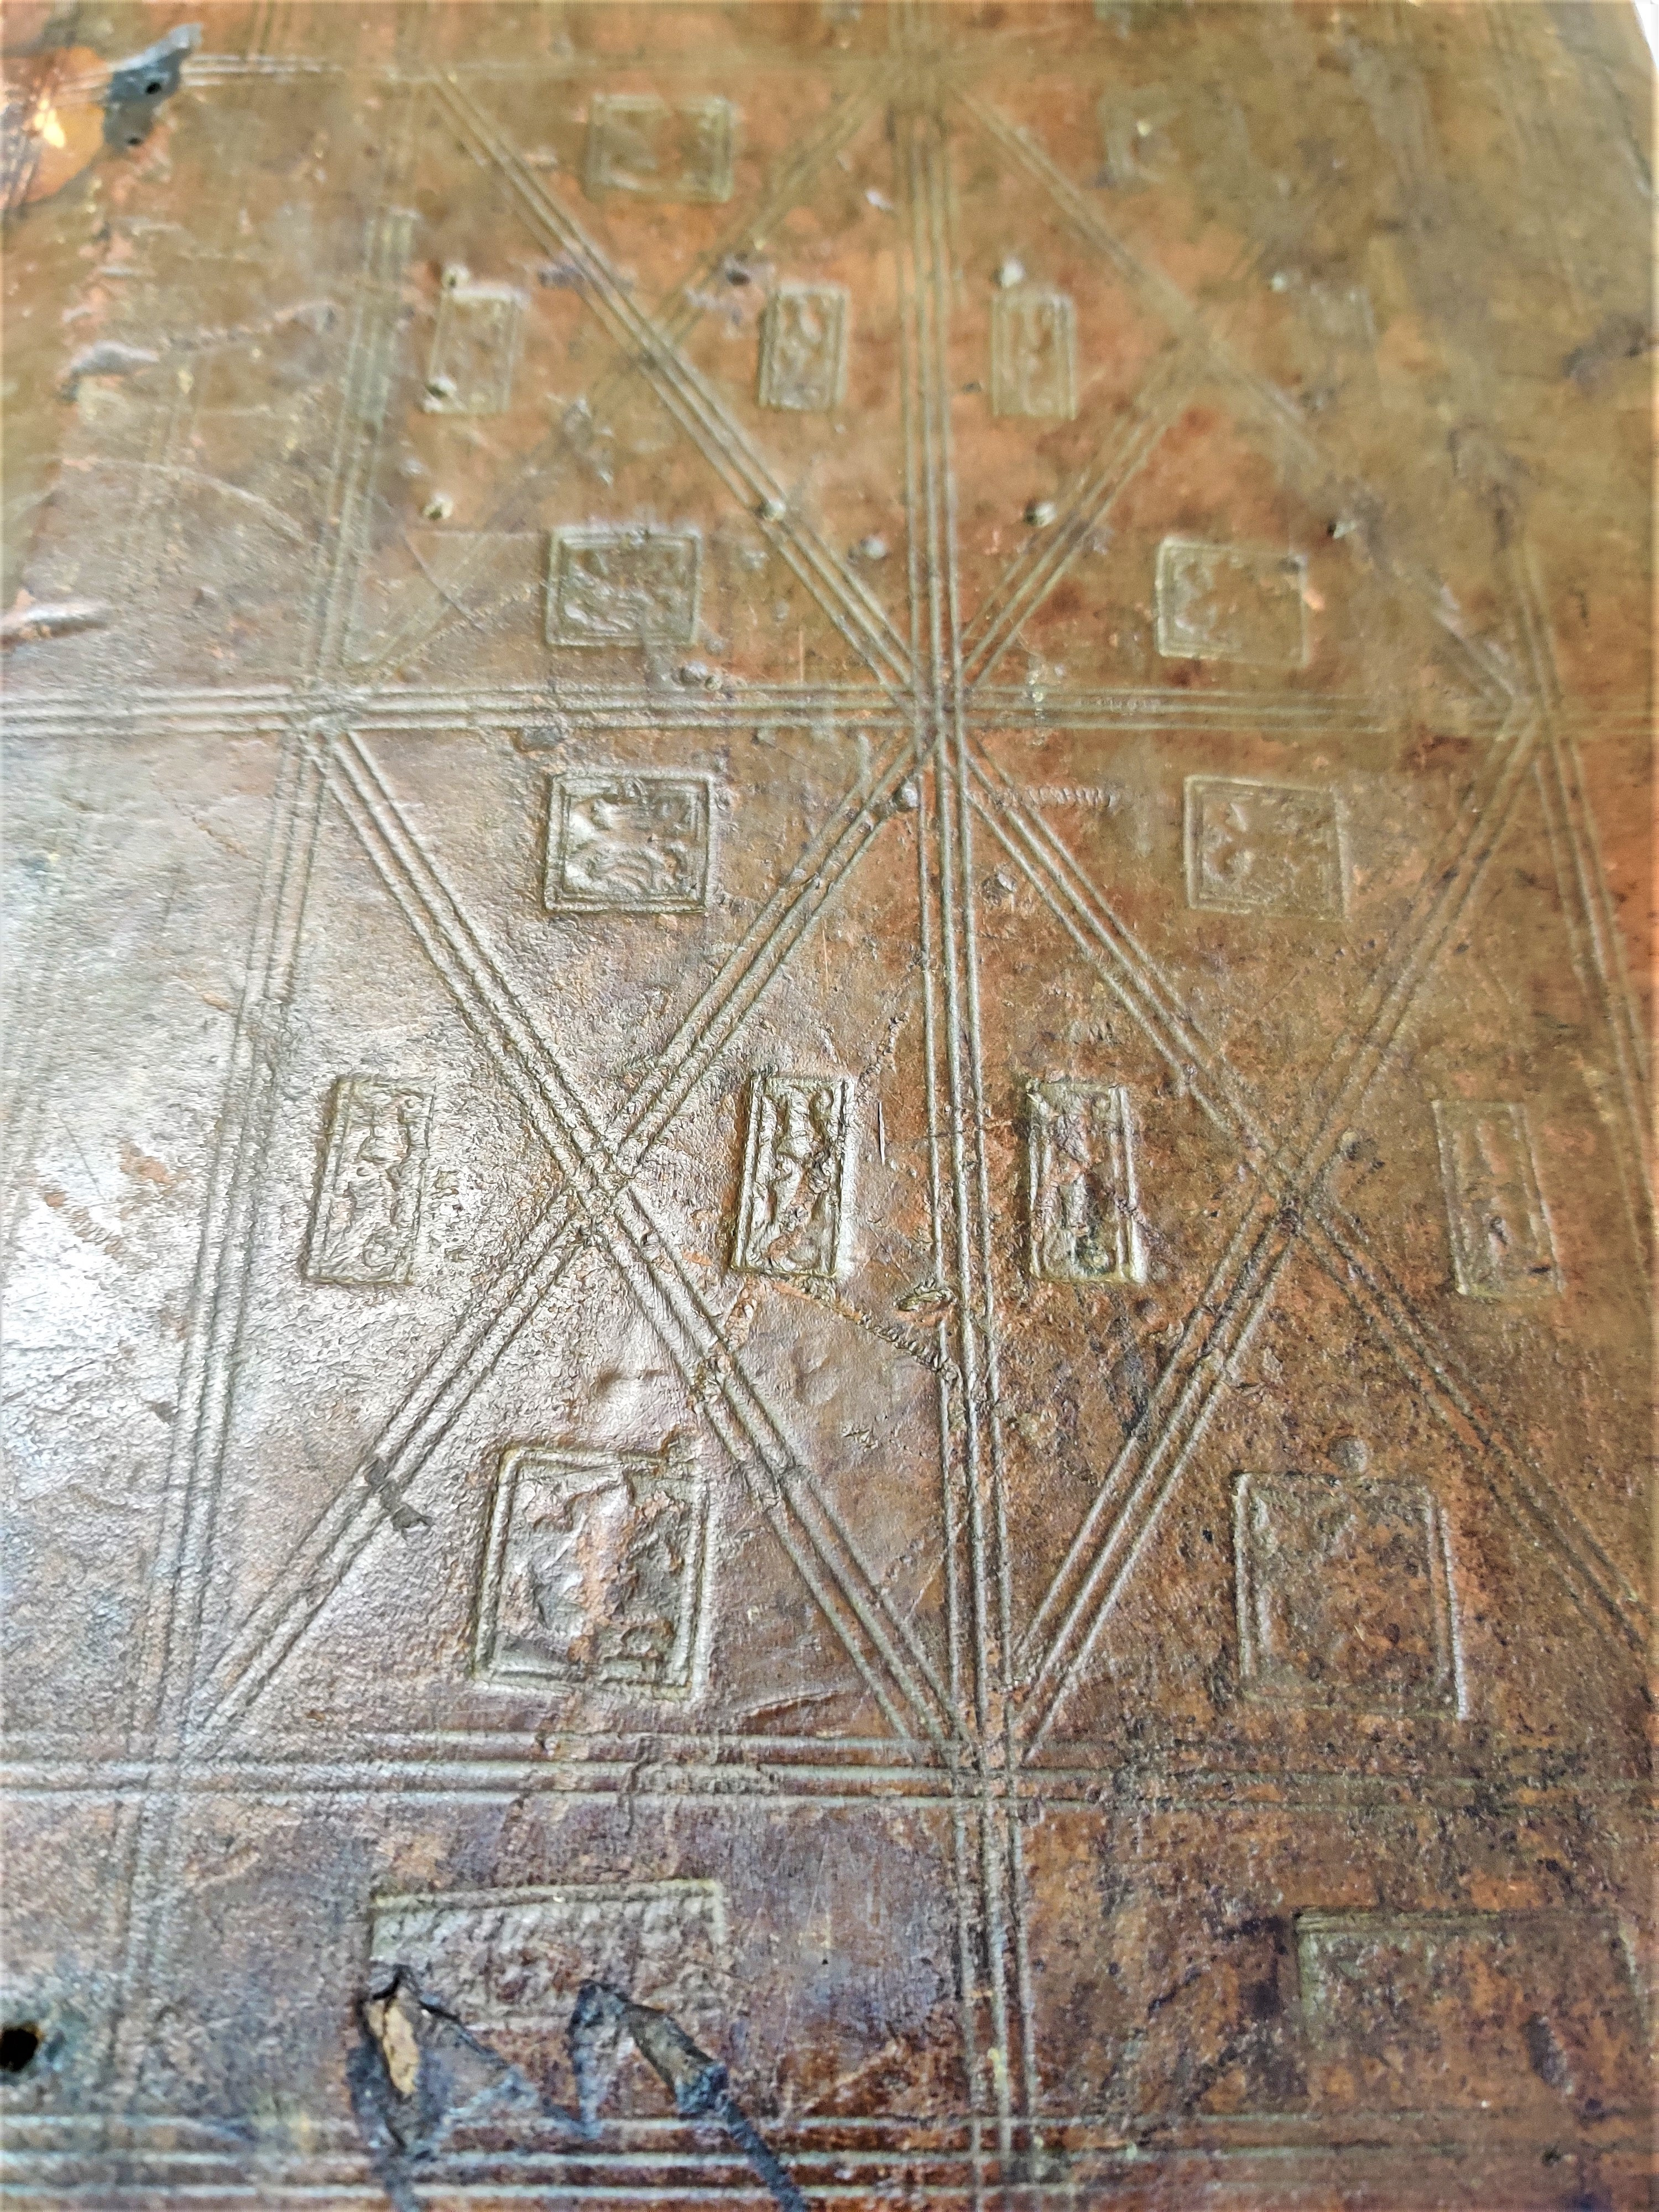 15th-century blind stamped binding on Balliol's copy of Formicarius